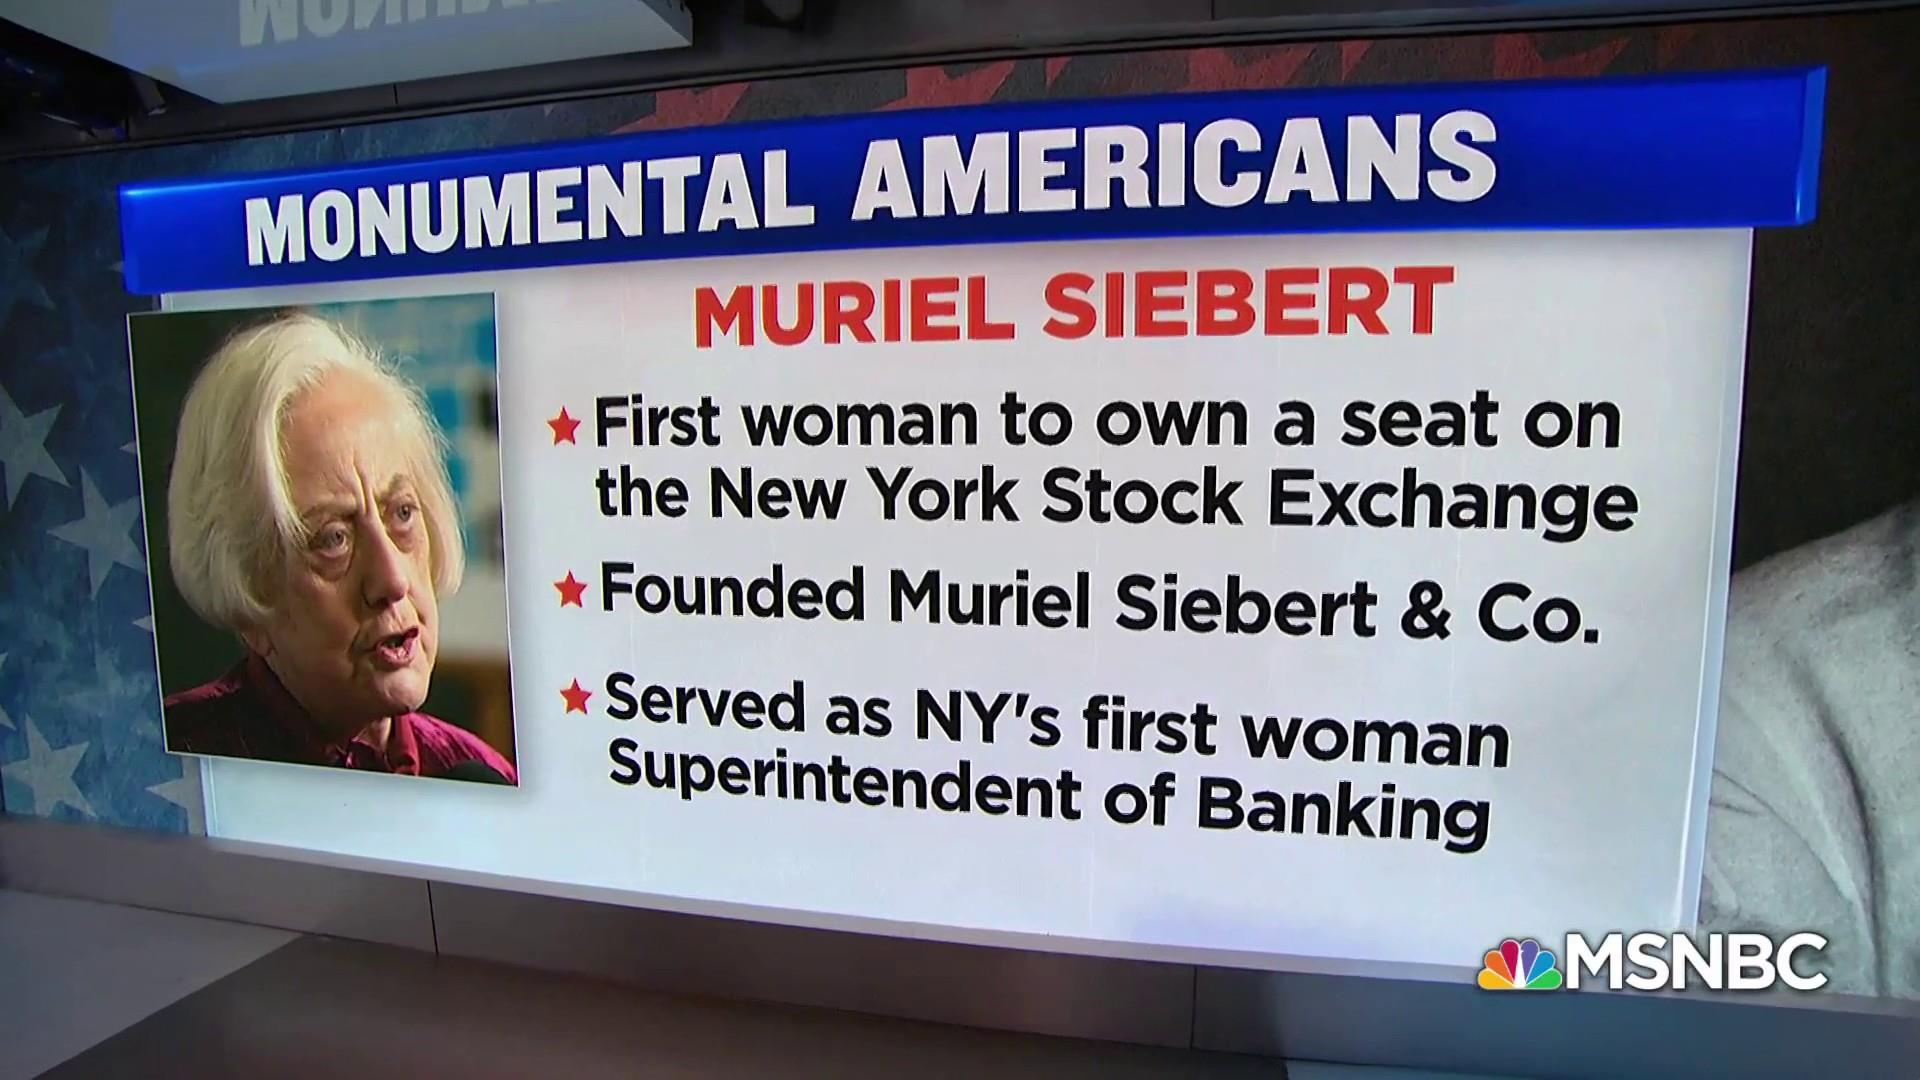 #MonumentalAmerican: First woman to own a seat on the NYSE